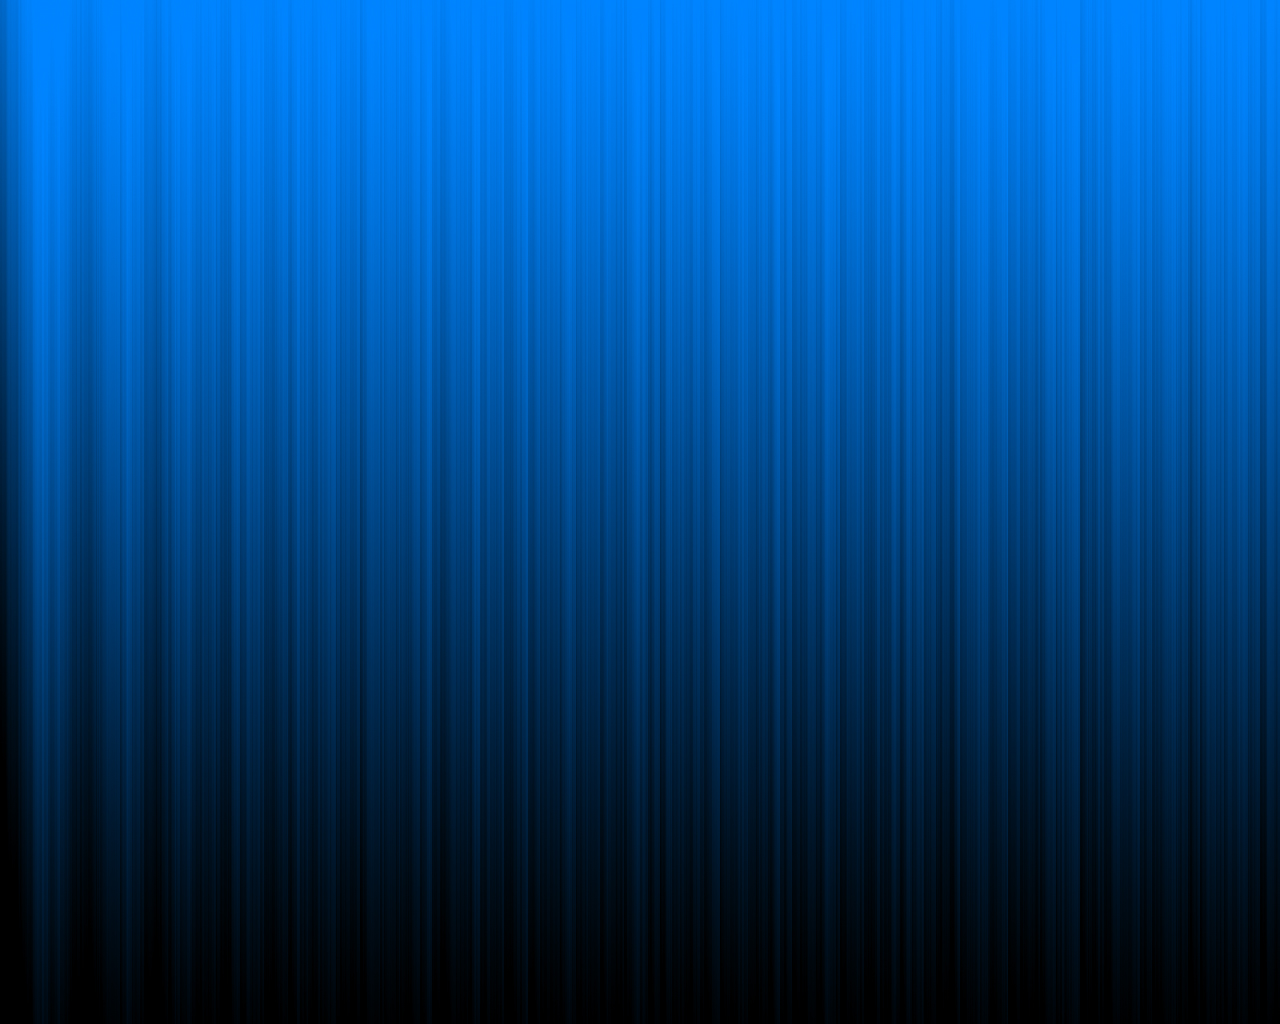 img-wallpapers-blue-wallpaper-juliomino-9957.jpg